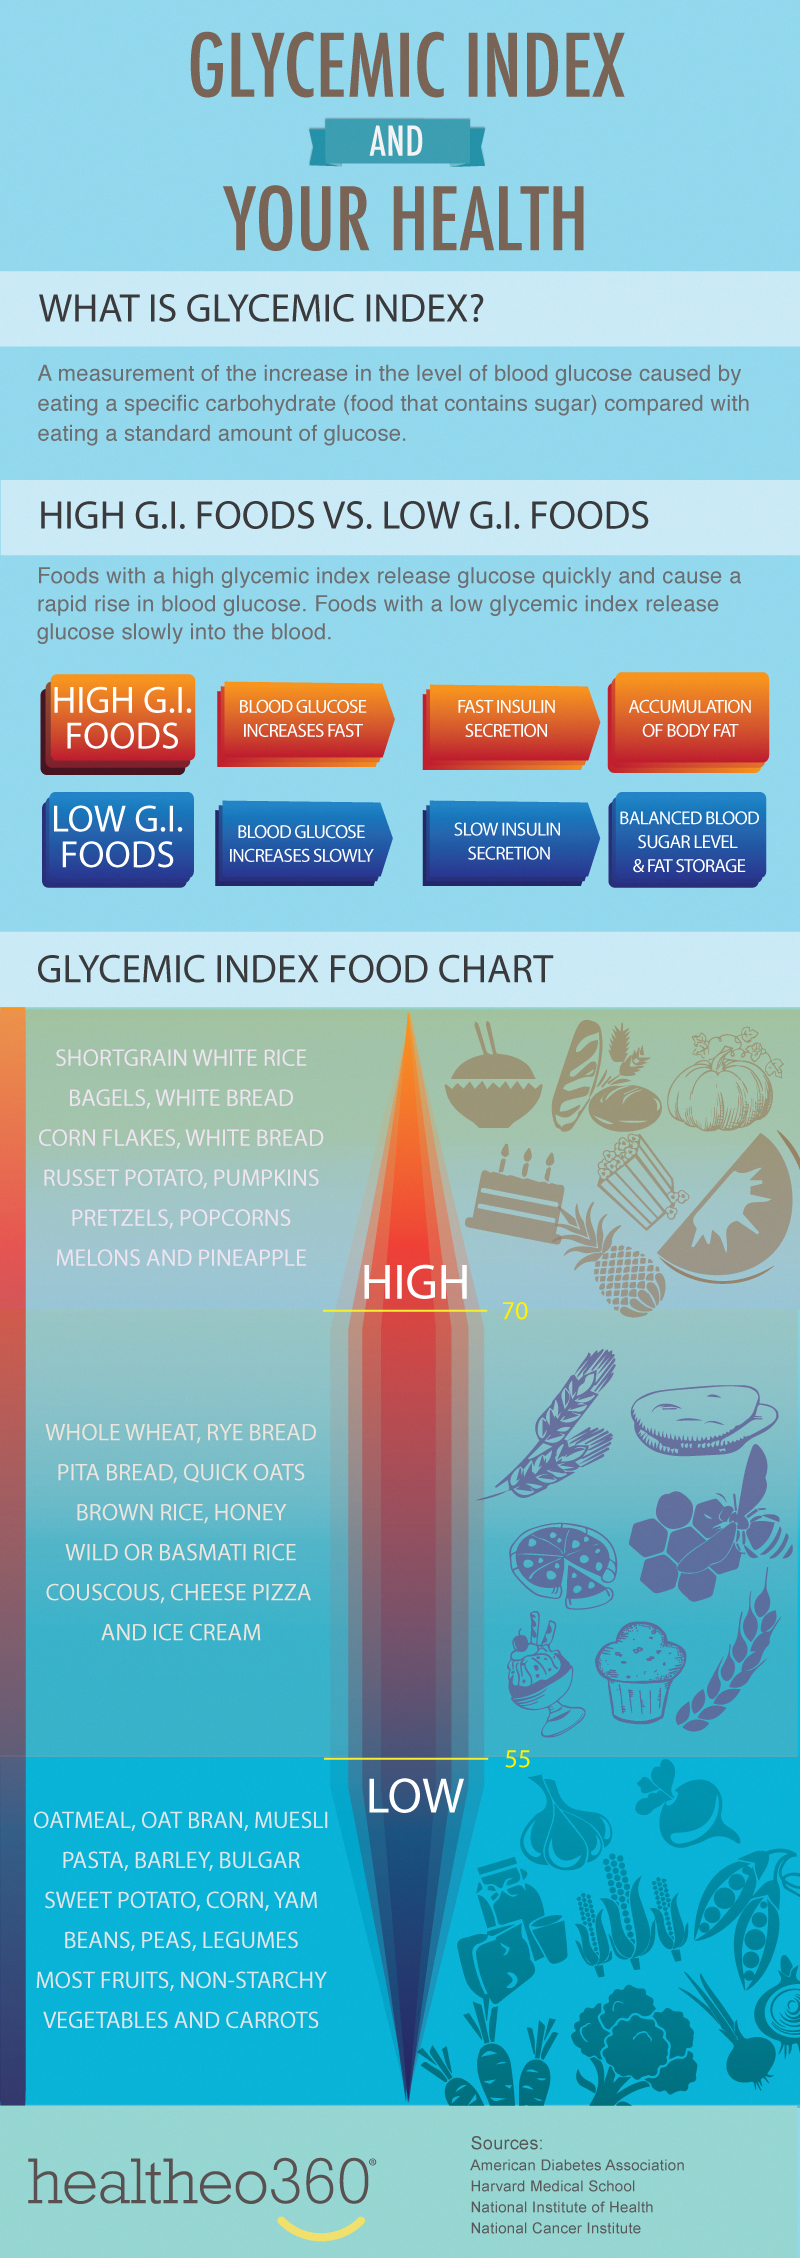 Pin on Low Glycemic Dinners